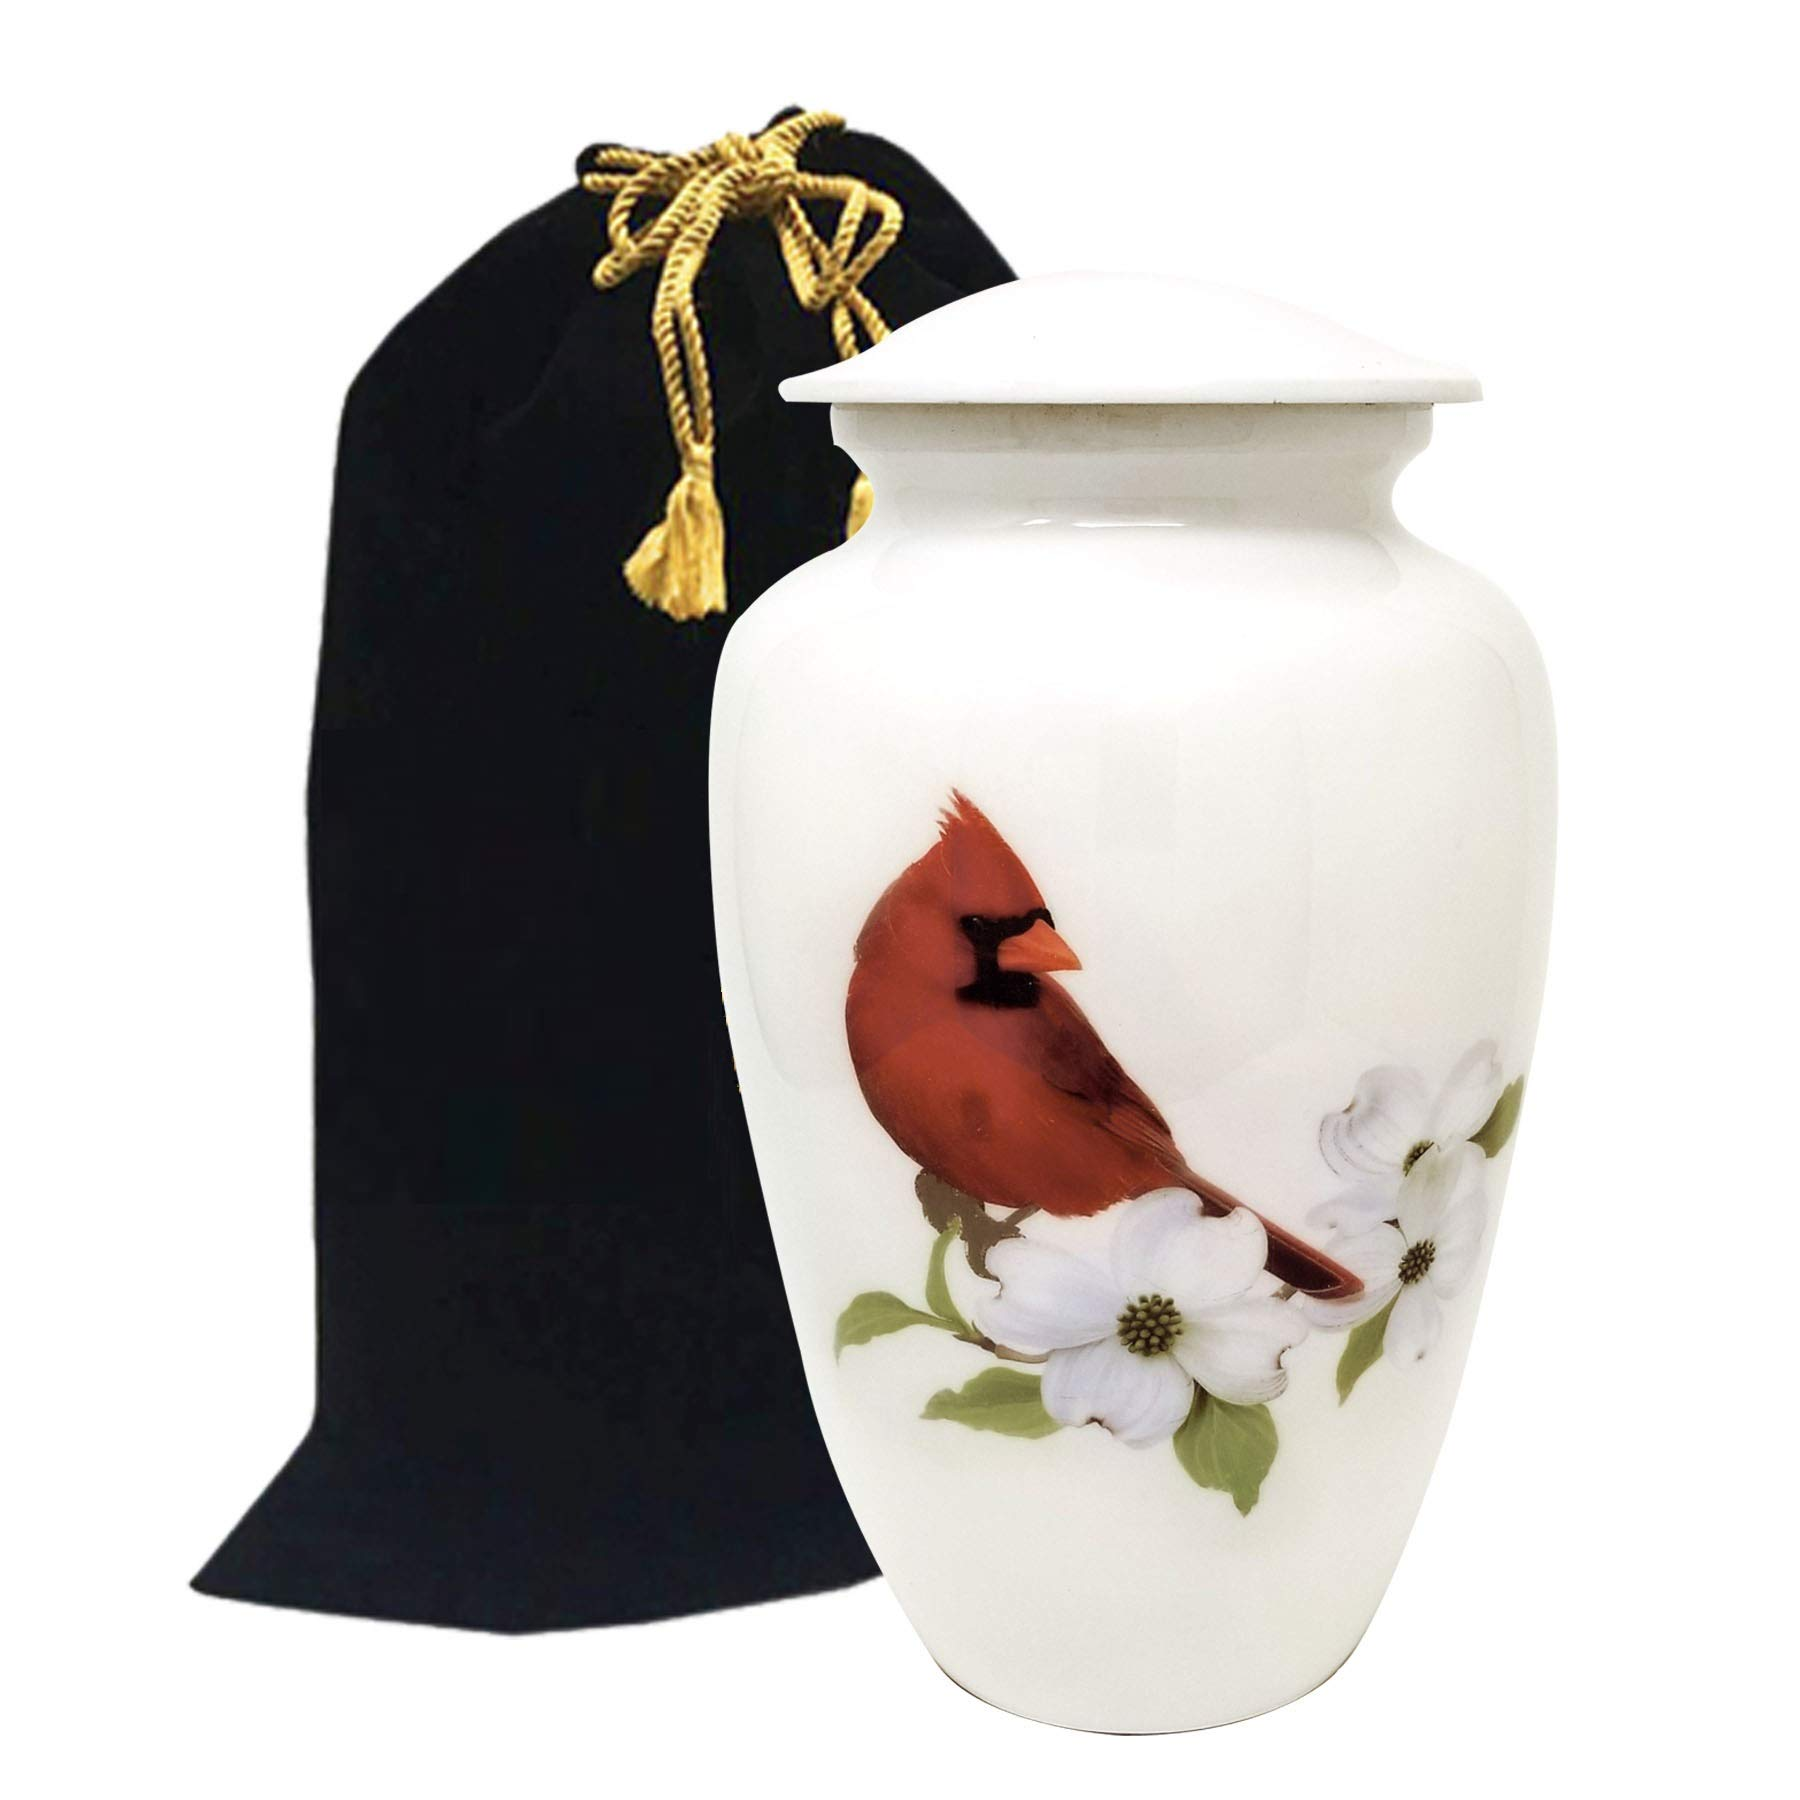 LiveUrns Cremation Urn for Adult Ashes - Cardinal Bird Cremation Urns for Human Ashes - Large Metal Hand Painted Burial and Funeral Cremation Urn, Memorial Urn for Human Ashes - Red Solid Metal Urn by LiveUrns